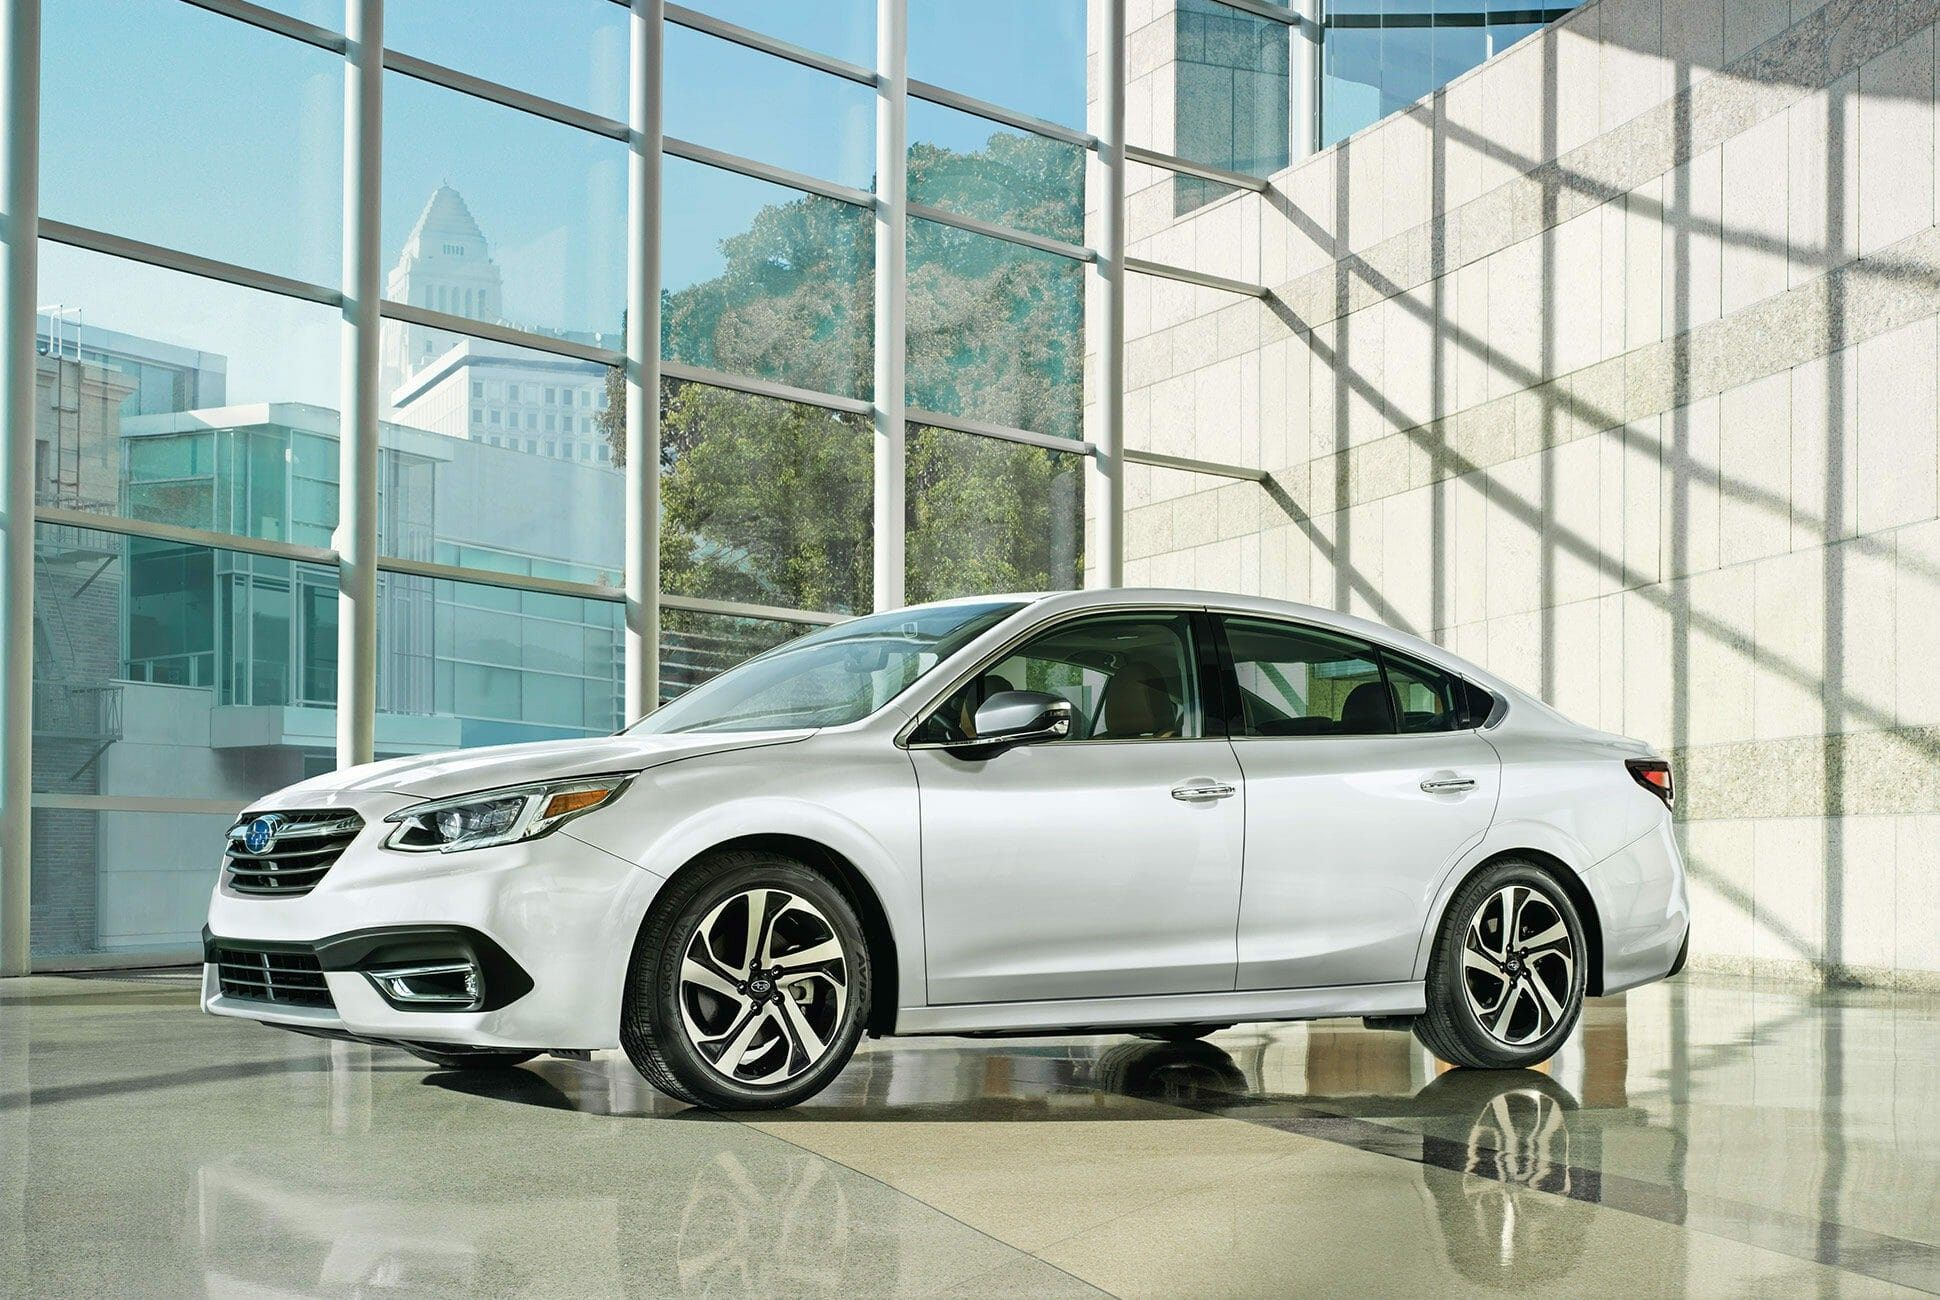 2018 Subaru Legacy Gt Specs Changes Release Date And Price Http Carsinformations Com Wp Content Uploads 2017 04 2018 Subaru Legacy Subaru Legacy Gt Subaru